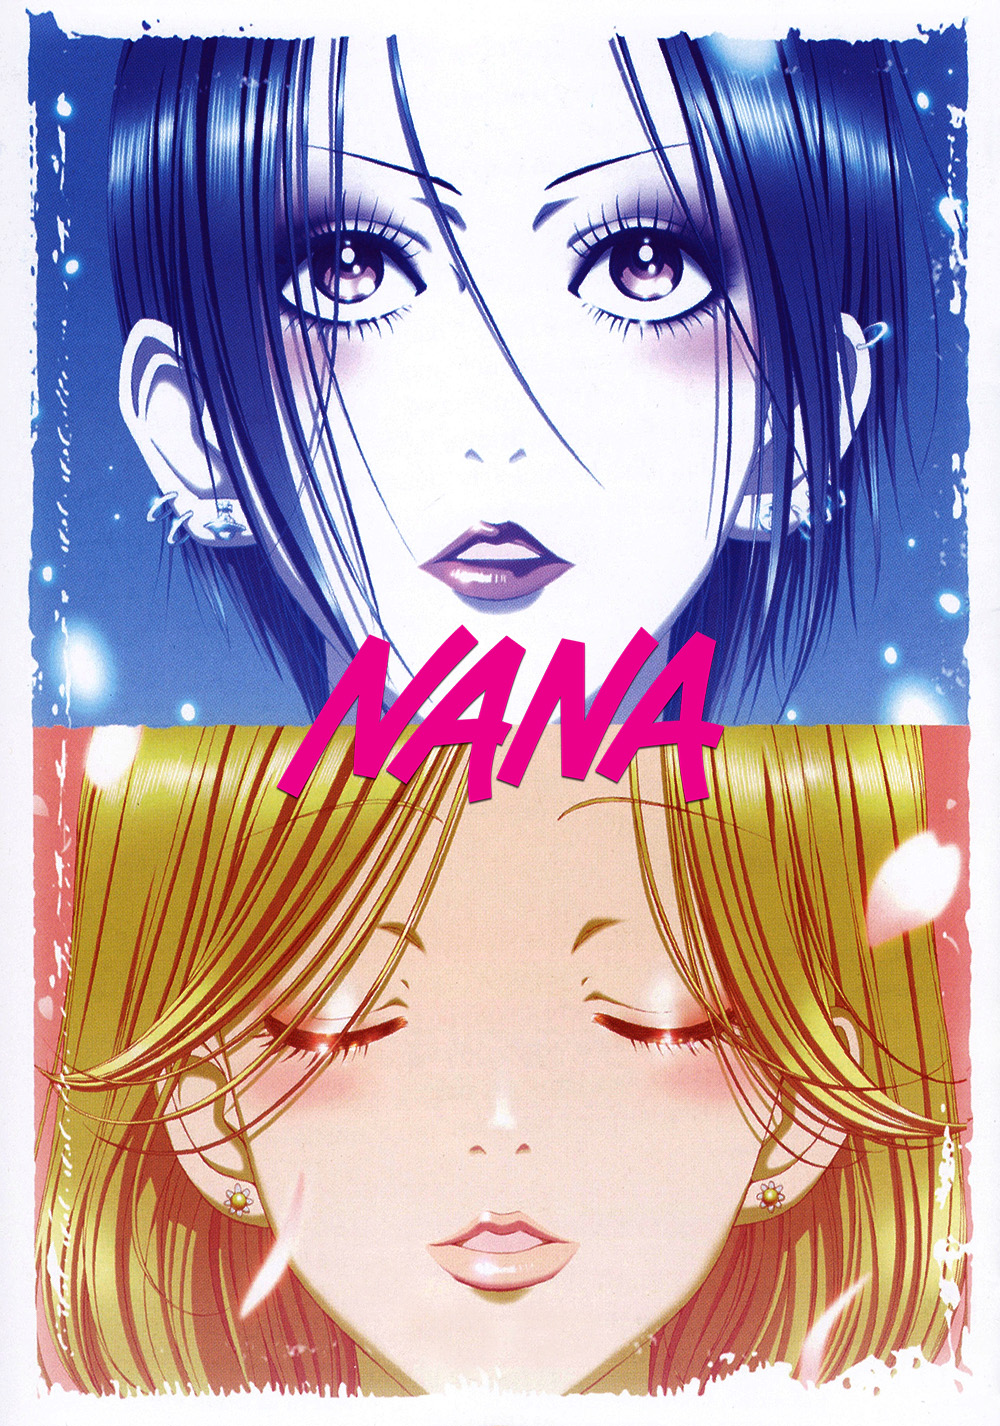 The anime nana's poster featuring both leading women. Nana empowers women through the bond these two leads share.